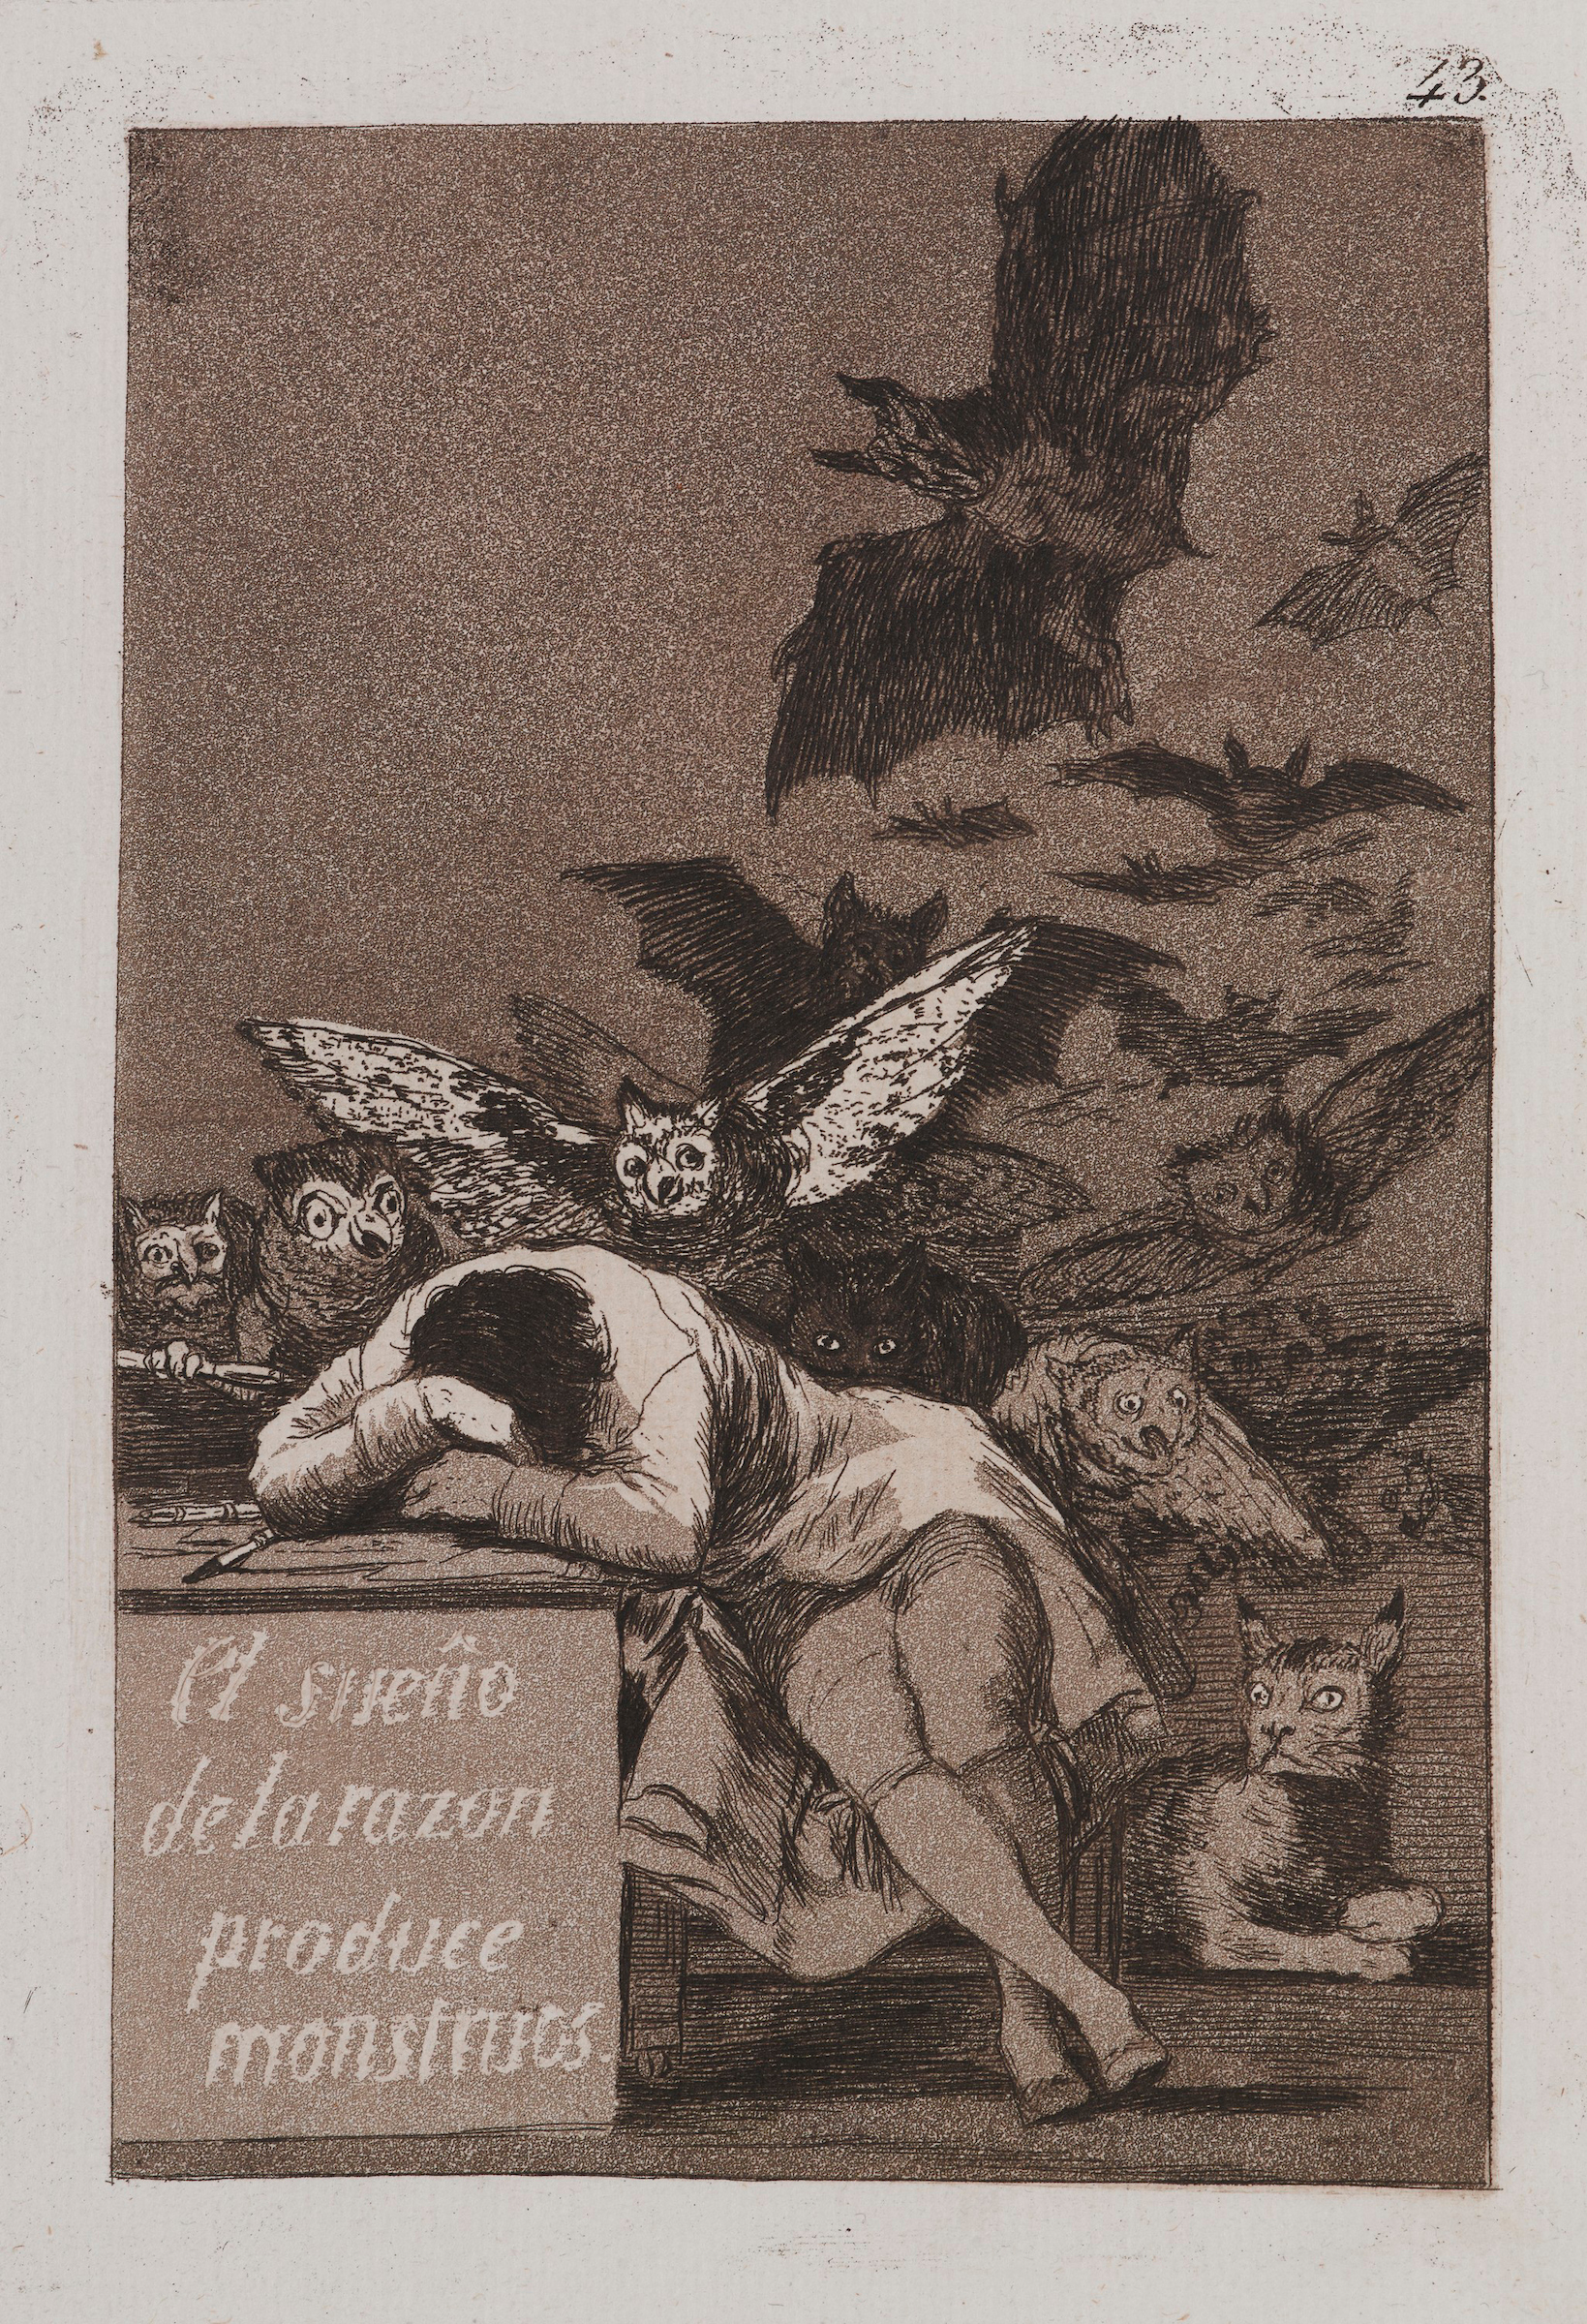 Francisco de Goya y Lucientes (Spanish, 1746—1828). The Sleep of Reason Produces Monsters (El sueño de la razón produce monstruos), plate 43 from The Caprices (Los Caprichos), 1797—98. Etching and aquatint on laid paper, 7 ¼ x 4 ¾ in. (18.4 x 12.2cm). Brooklyn Museum; A. Augustus Healy Fund, Frank L. Babbott Fund, and Carll H. de Silver Fund, 37.33.43. (Photo: Jonathan Dorado, Brooklyn Museum)